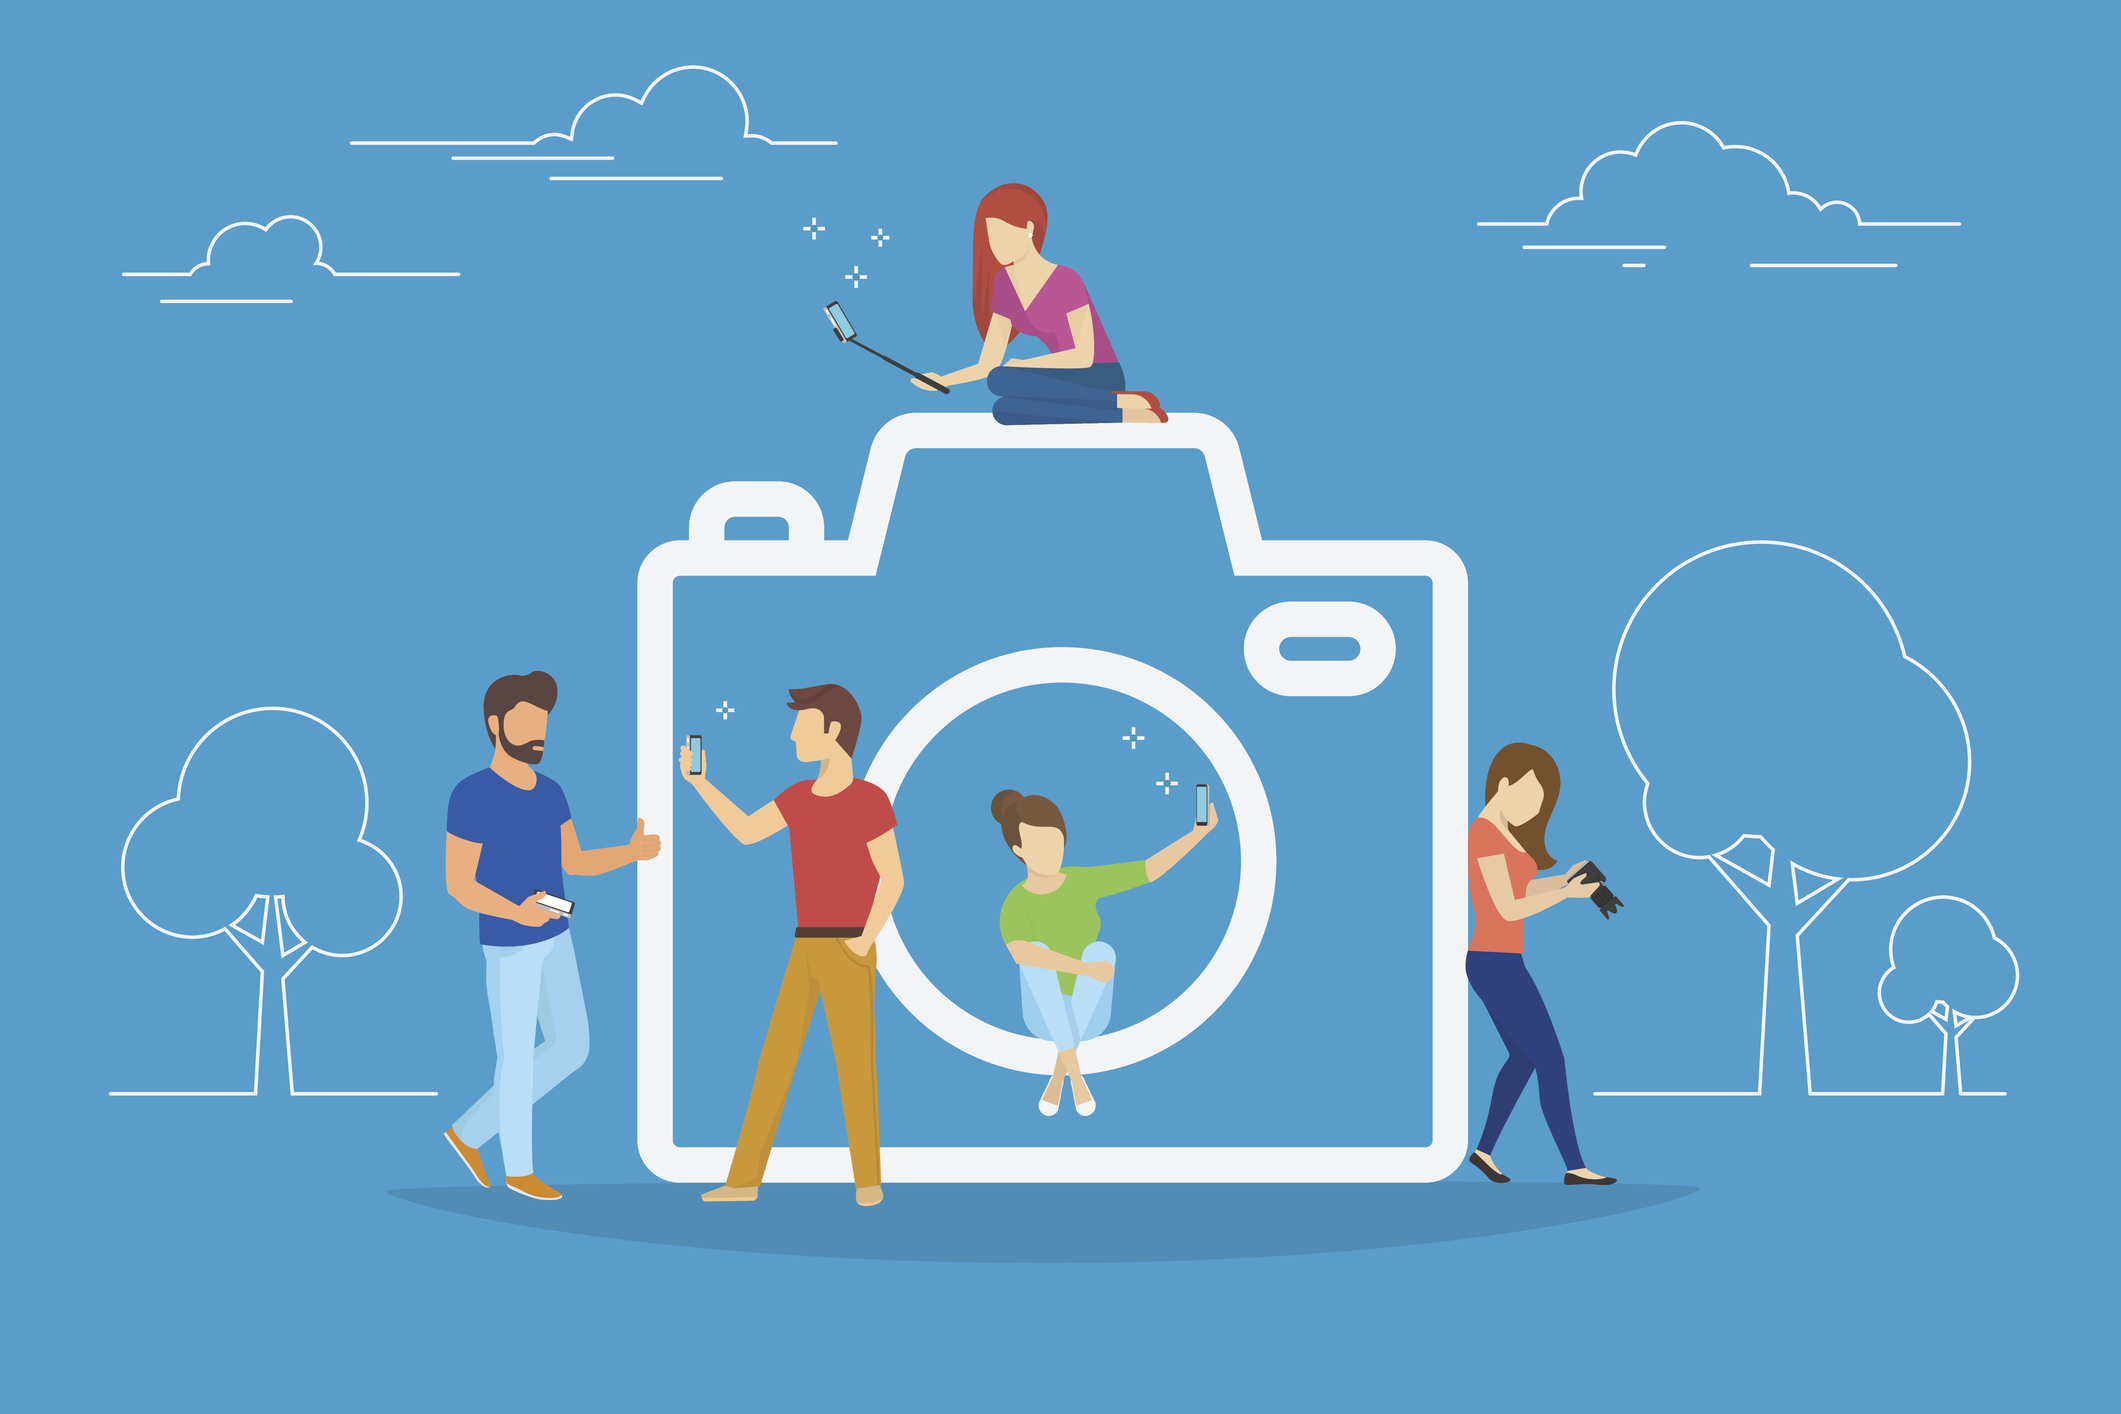 Eight ways to engage your users on Instagram